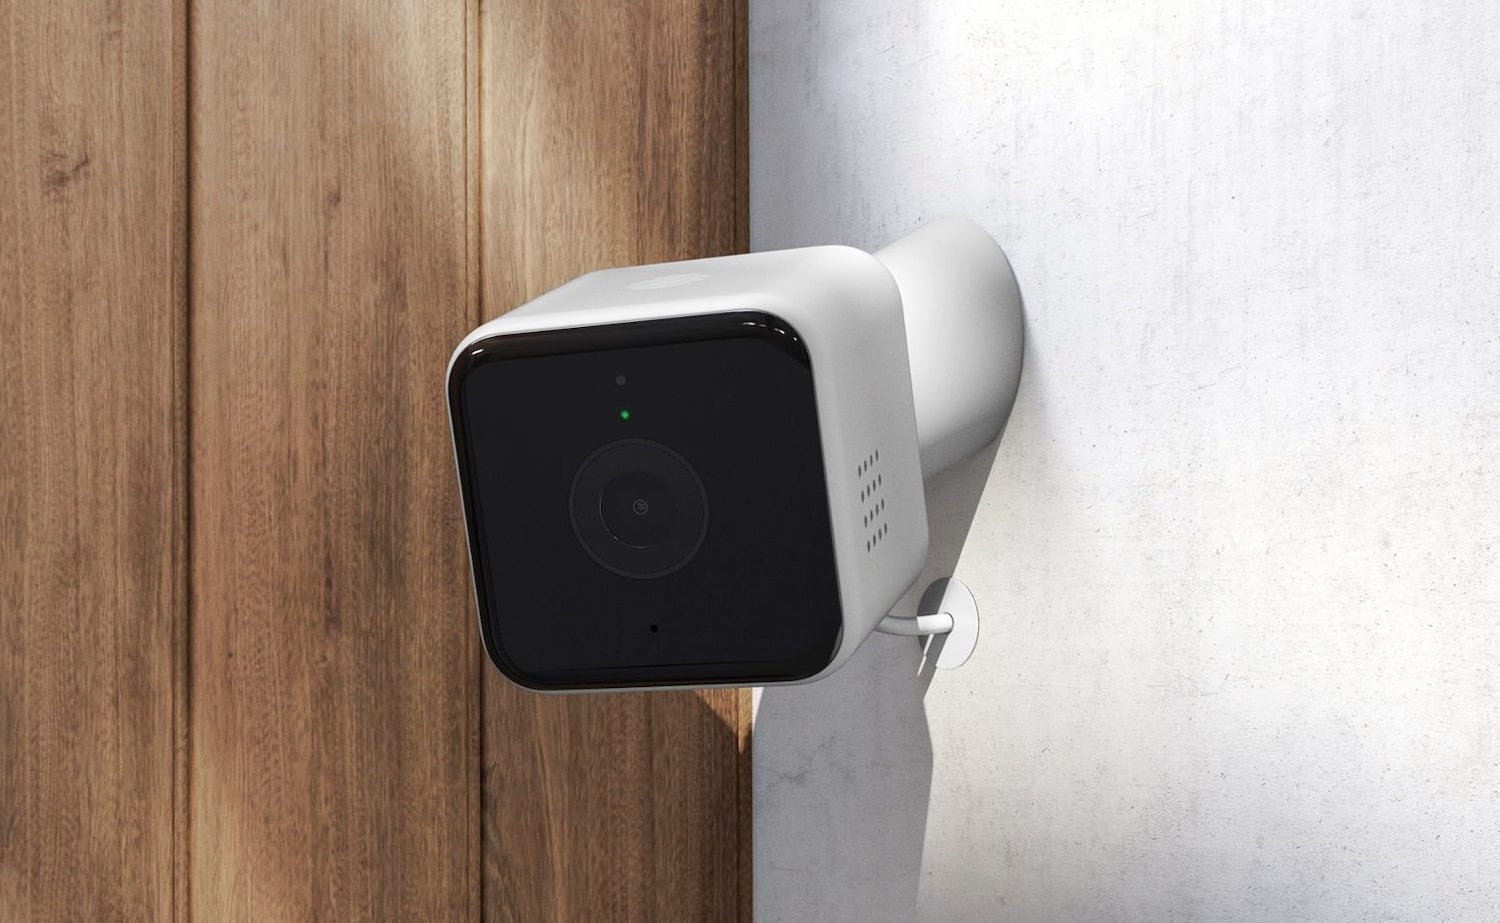 Hive View Outdoor Security Camera notifies you of any unusual activity